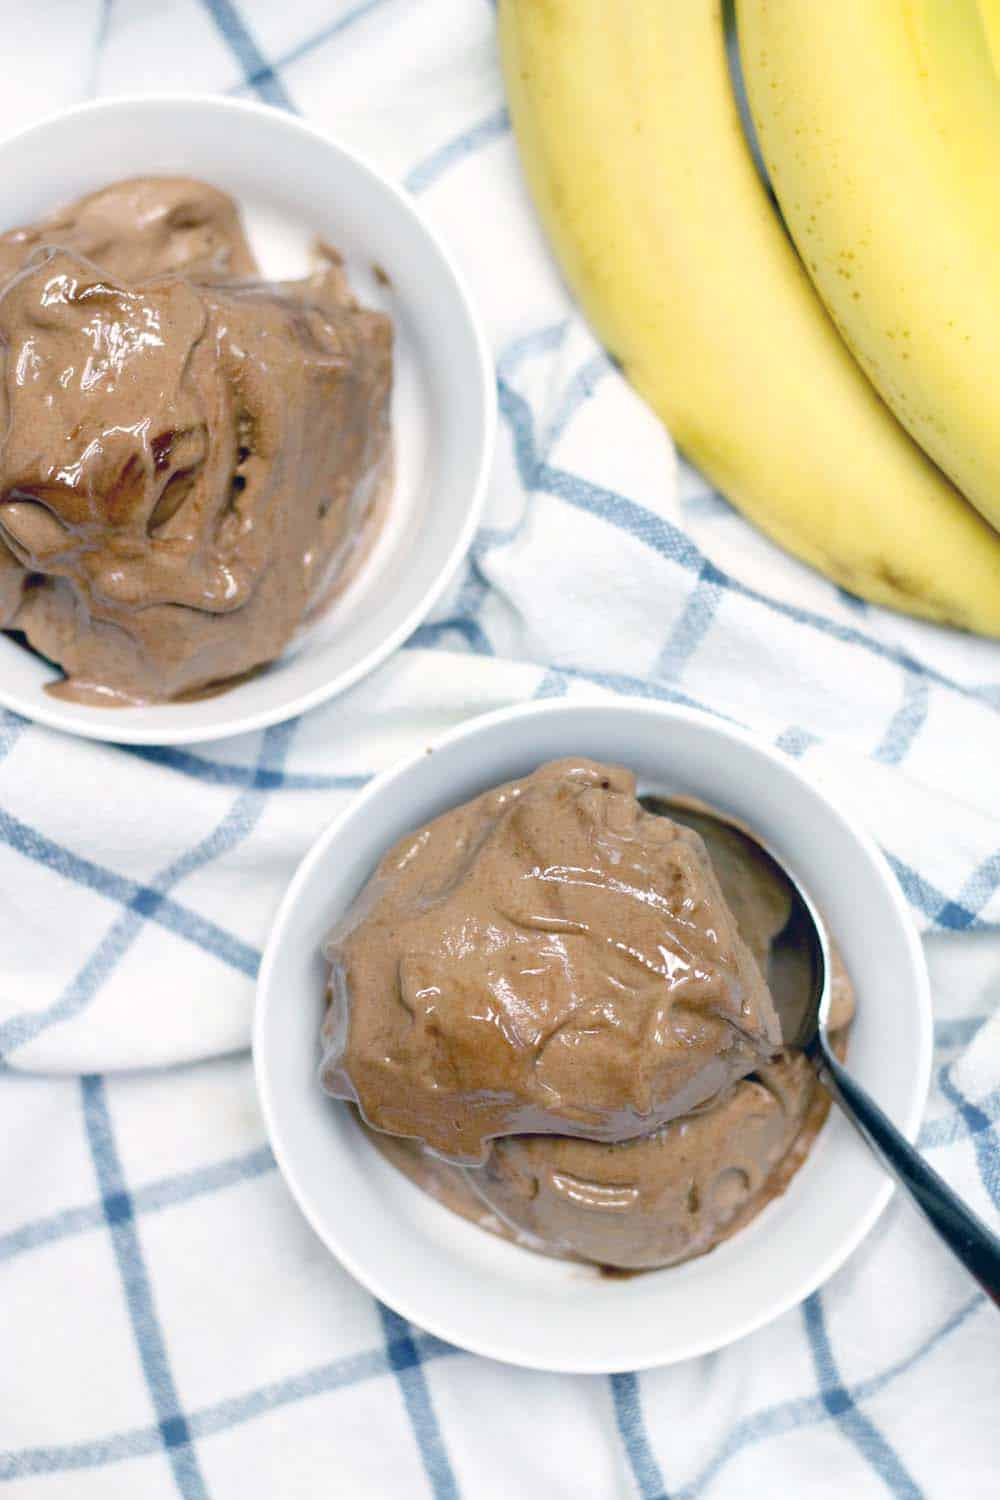 This vegan chocolate banana ice cream is made of only TWO ingredients and is an awesome, healthy substitute for traditional ice cream!